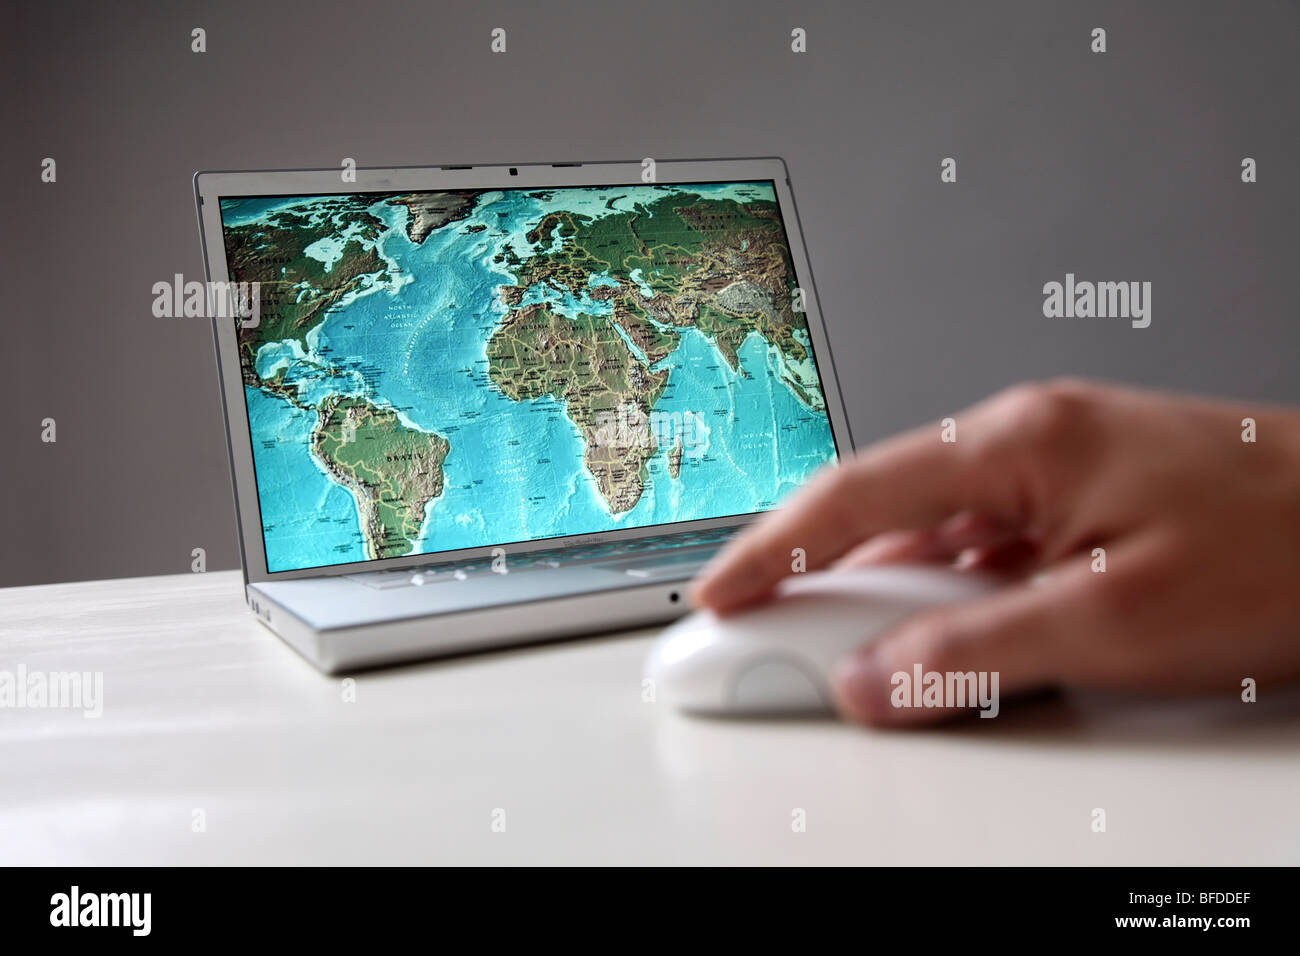 World map on computer screen - Stock Image